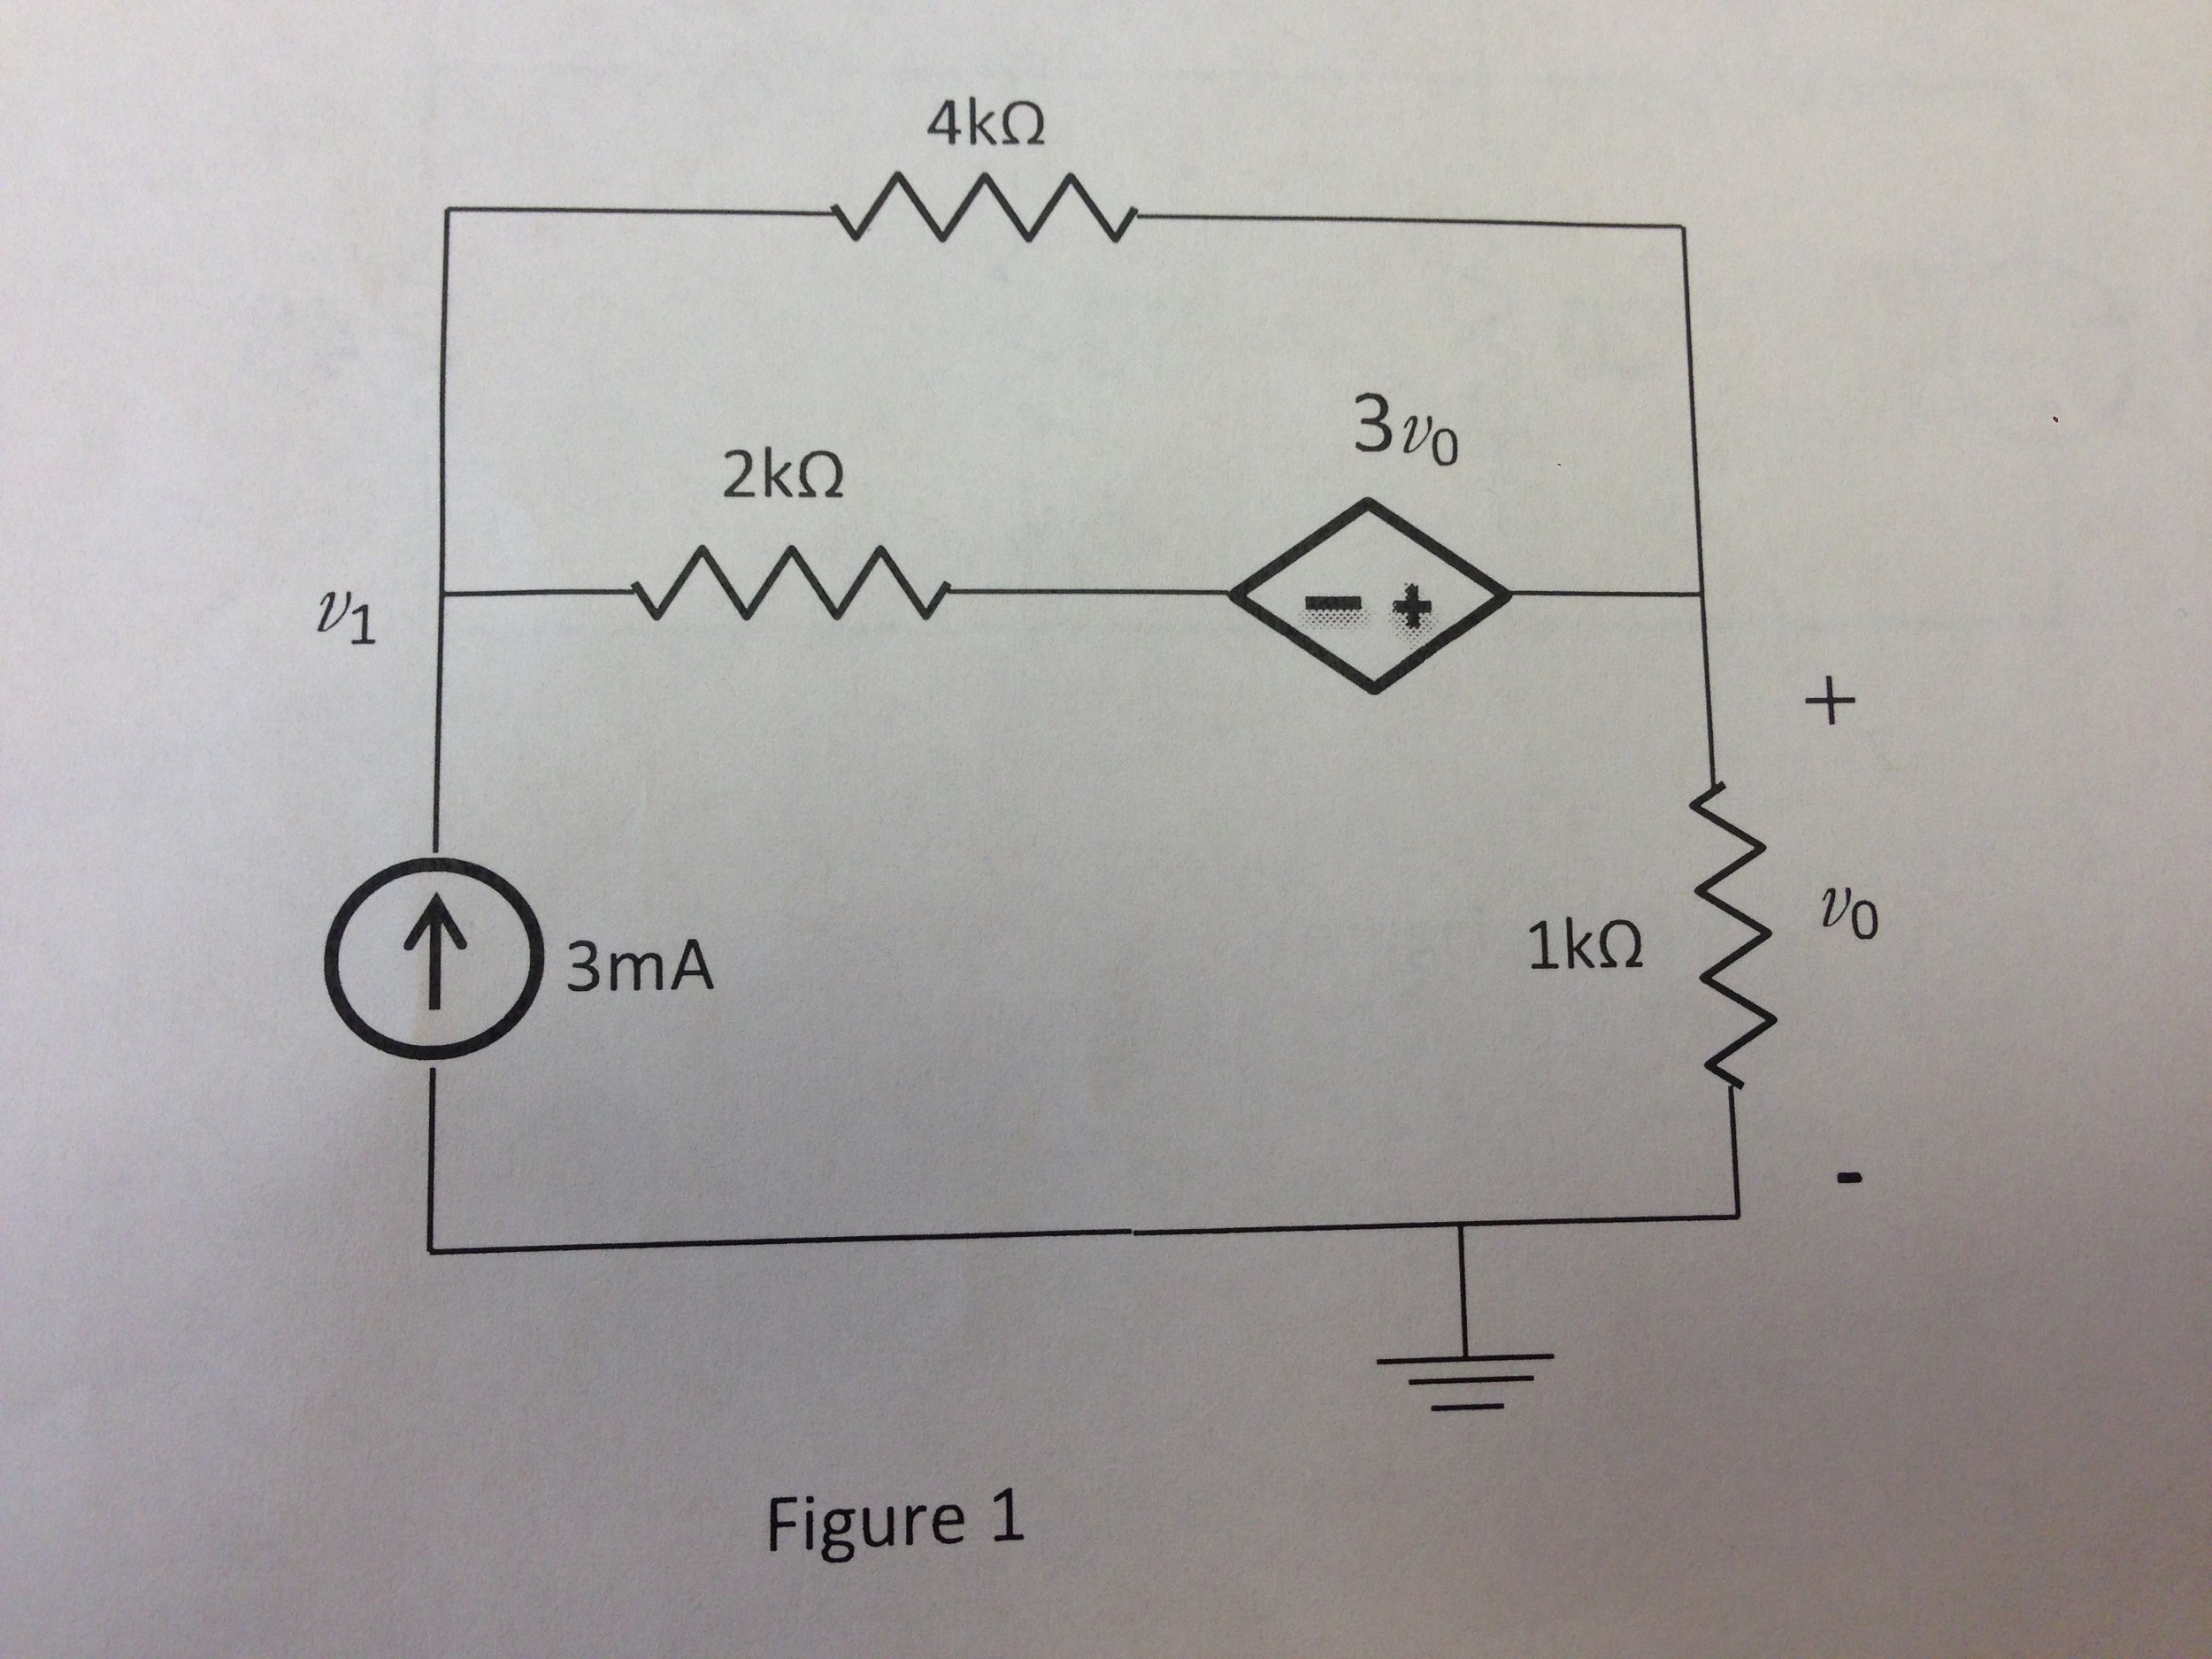 Find v0 and v1, in the circuit shown in Figure 1,